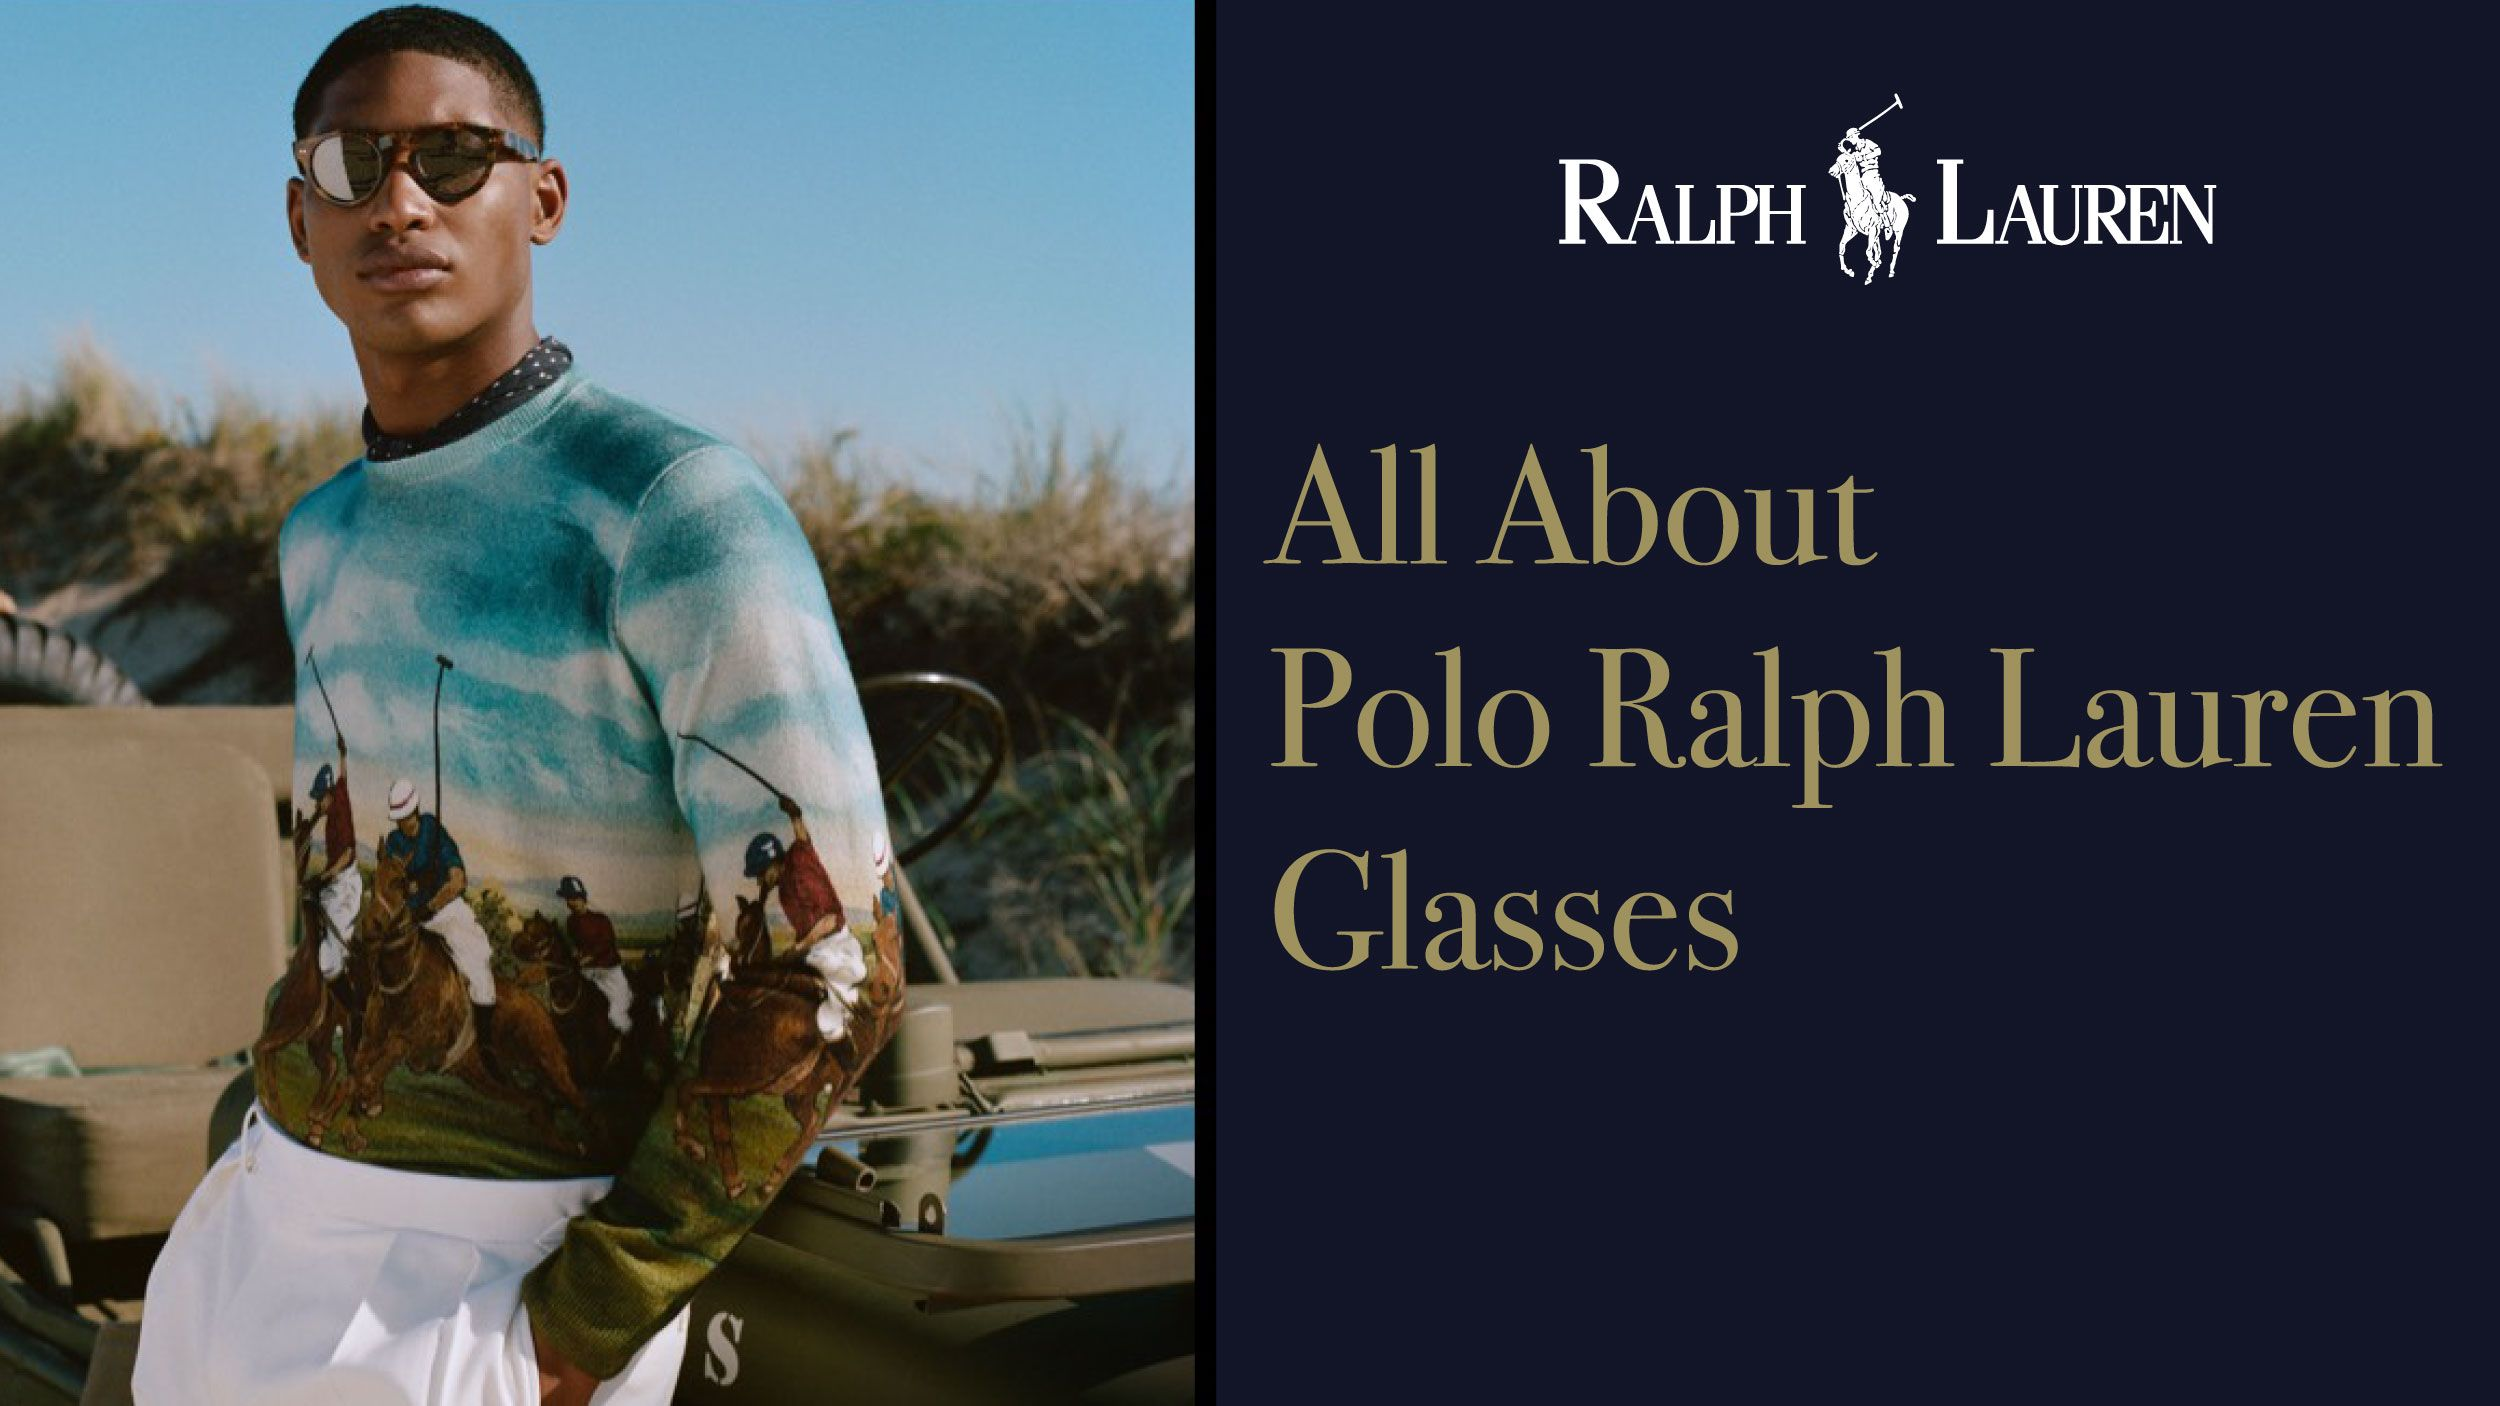 All About Polo Ralph Lauren Glasses Header